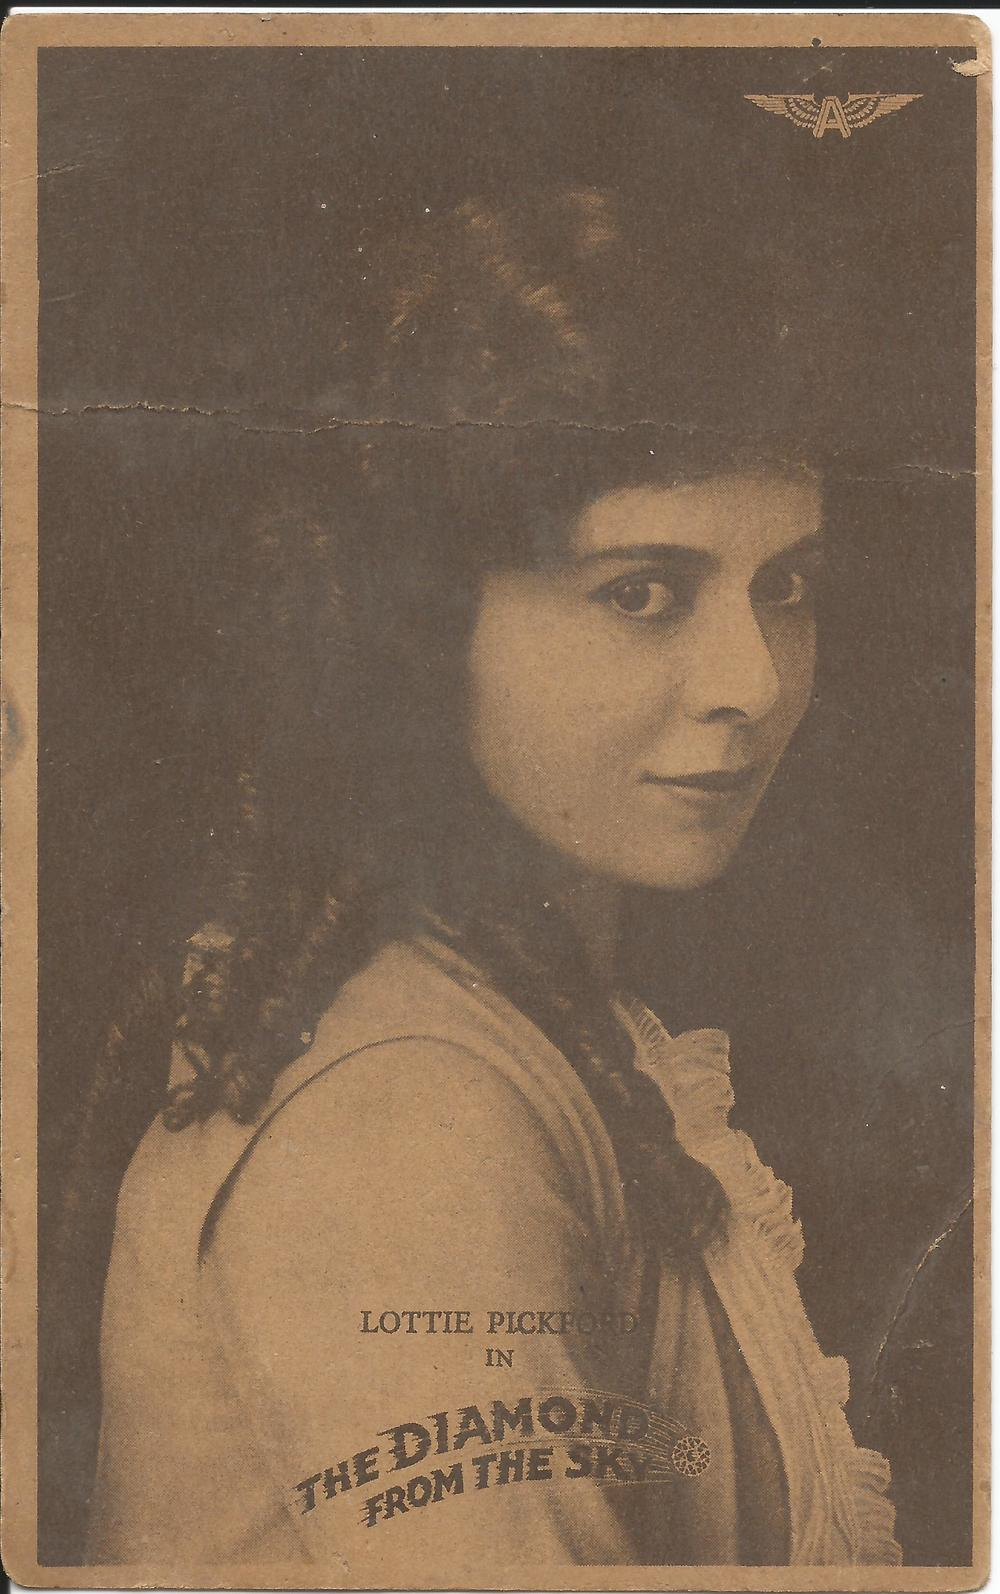 Promotional postcard of Lottie Pickford